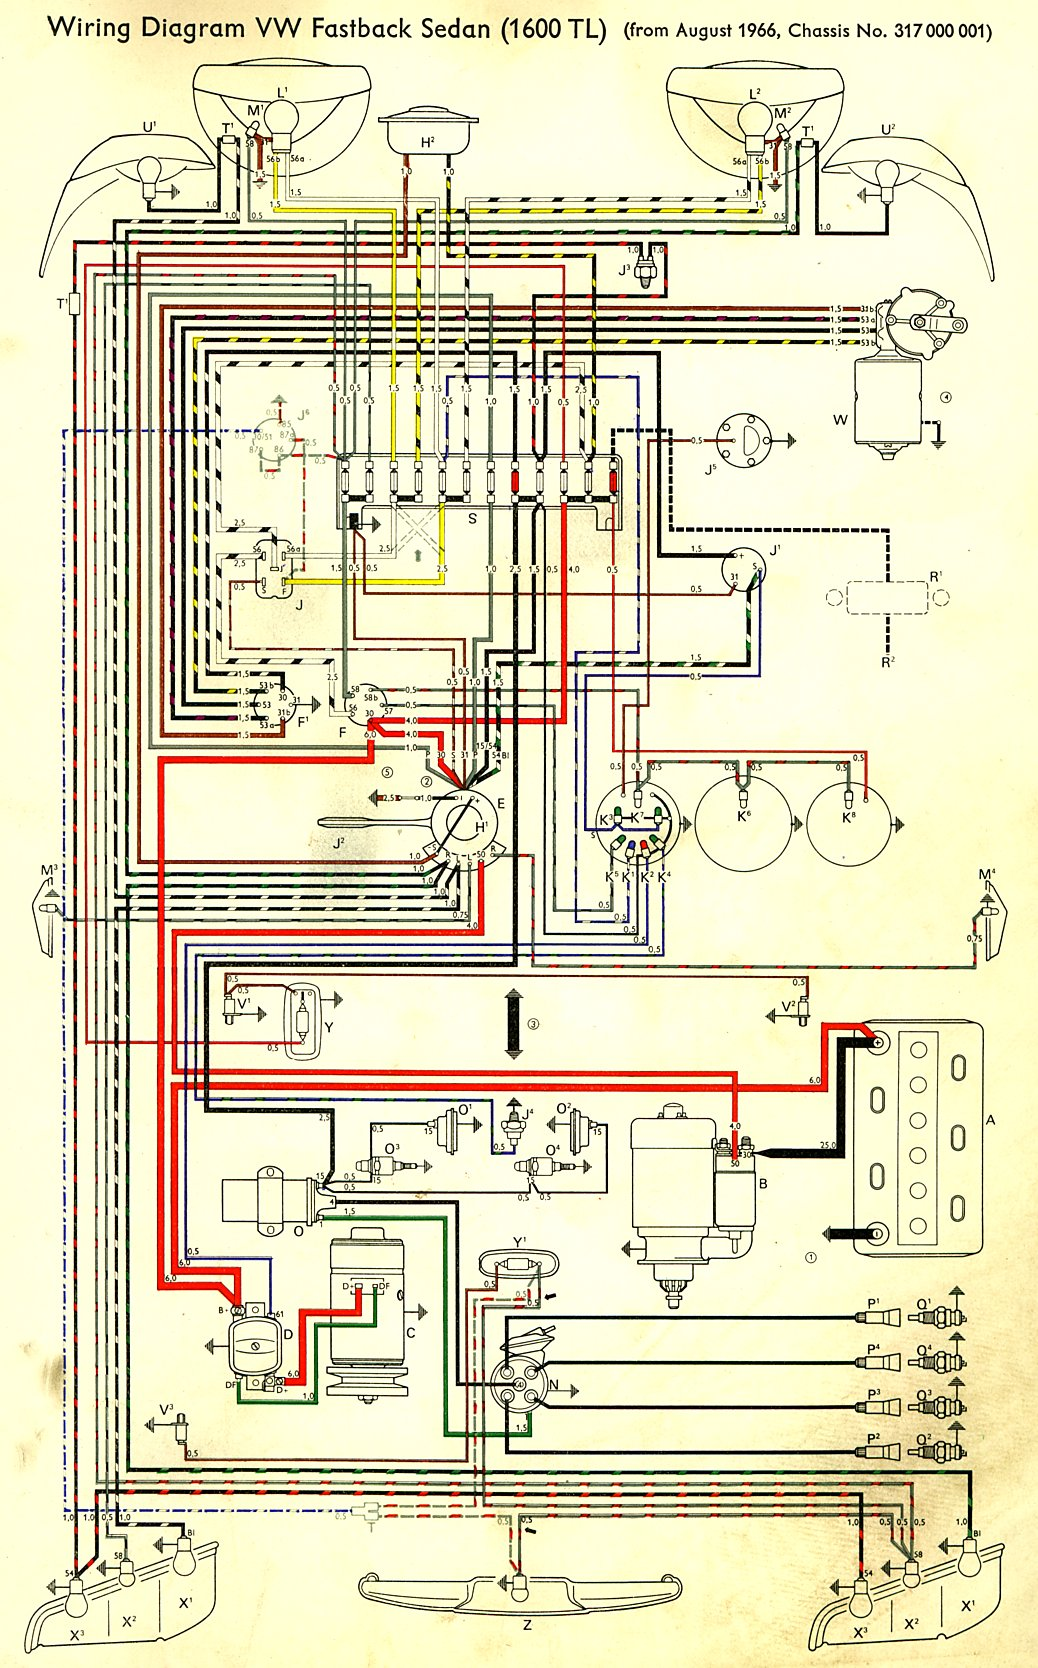 type3_1600TL_67 thesamba com type 3 wiring diagrams vw type 3 wiring harness at aneh.co